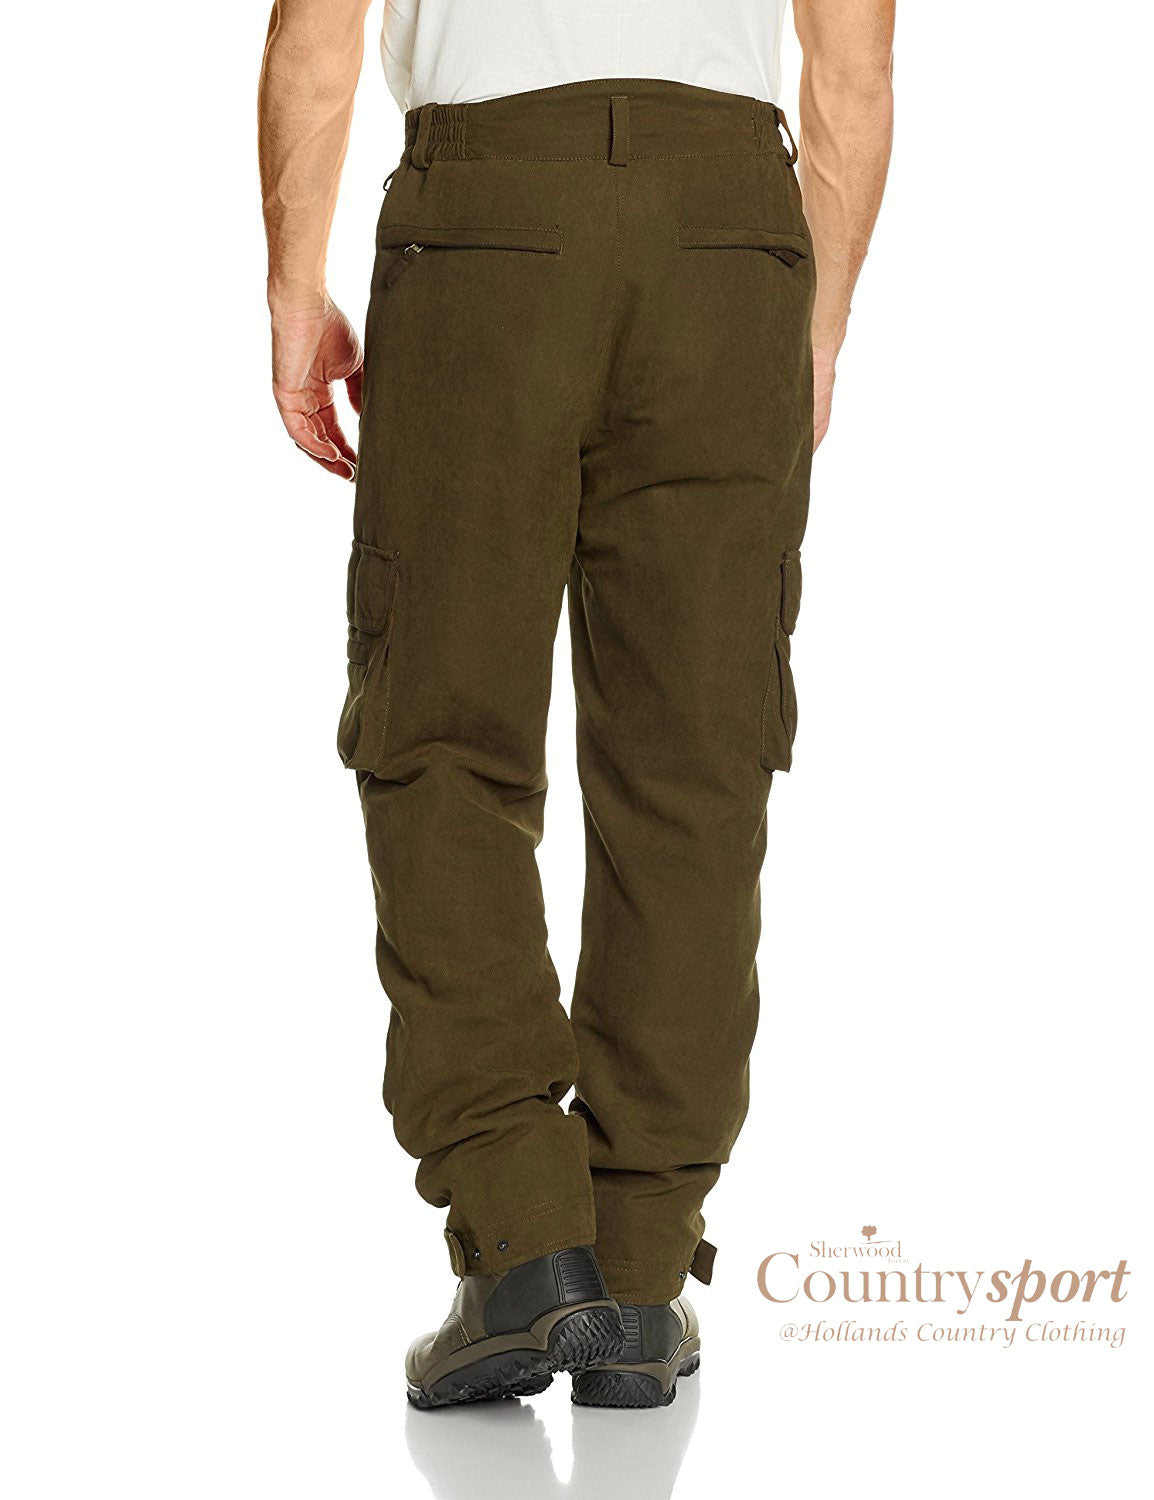 waterproof Sherwood Forest Kensington Trousers